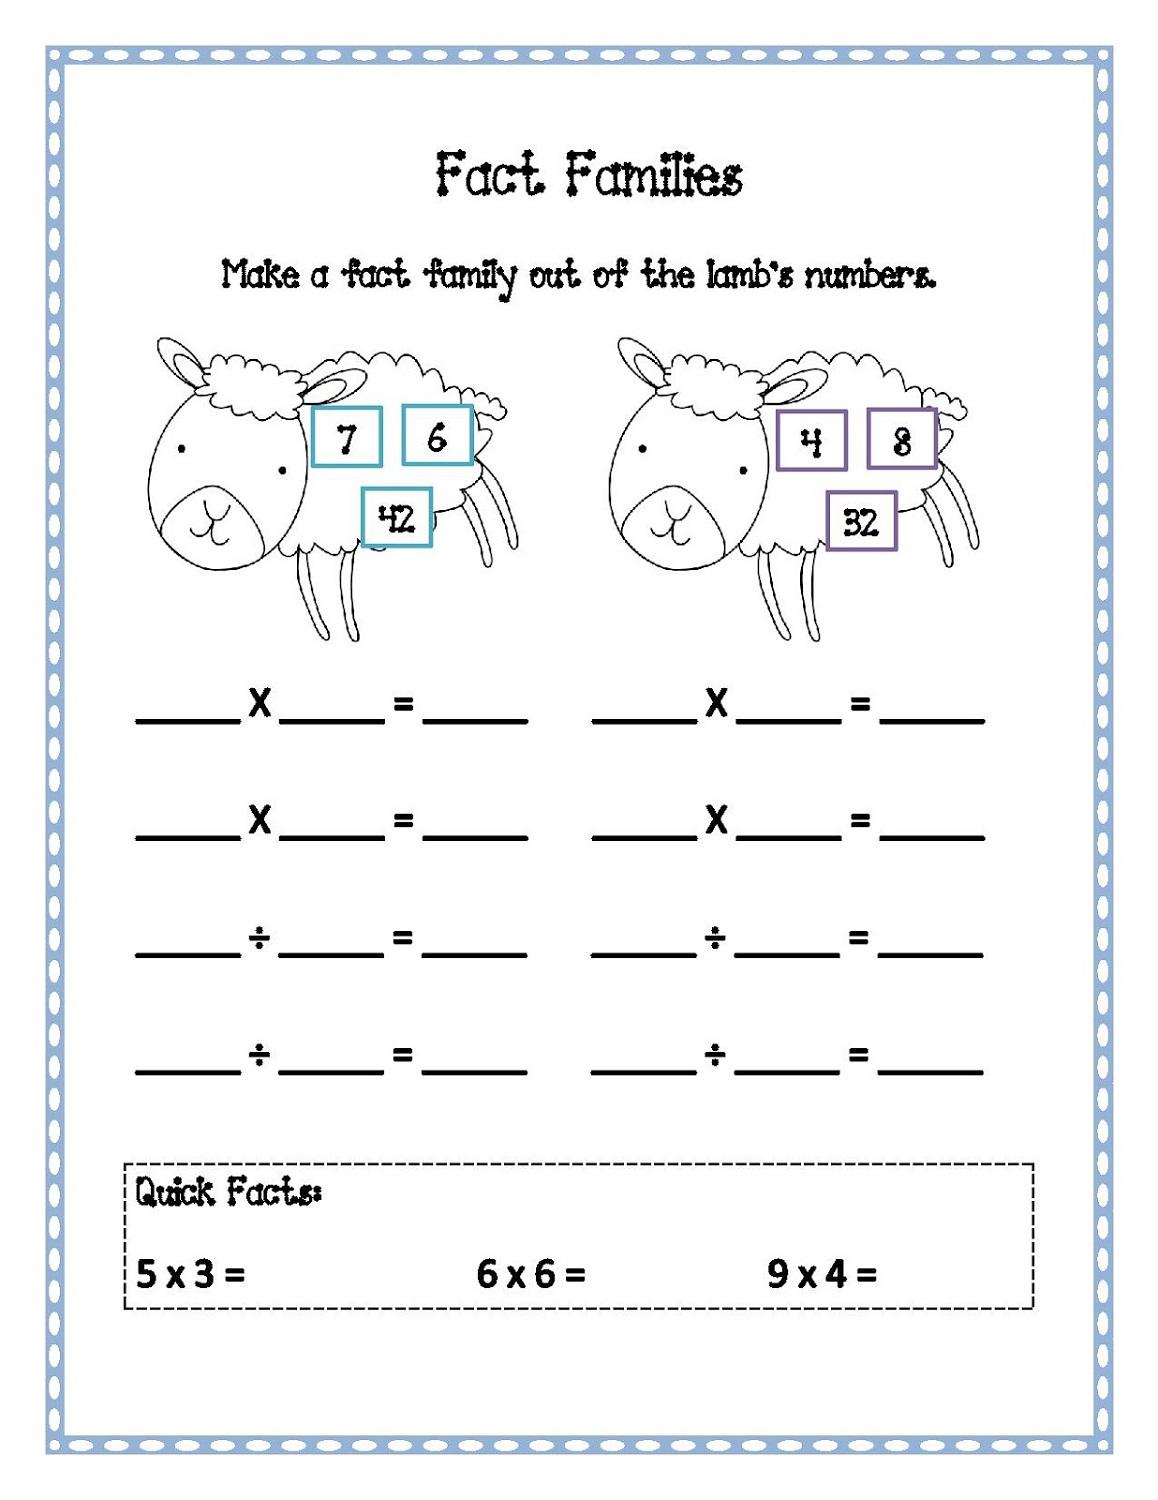 fact families worksheets simple